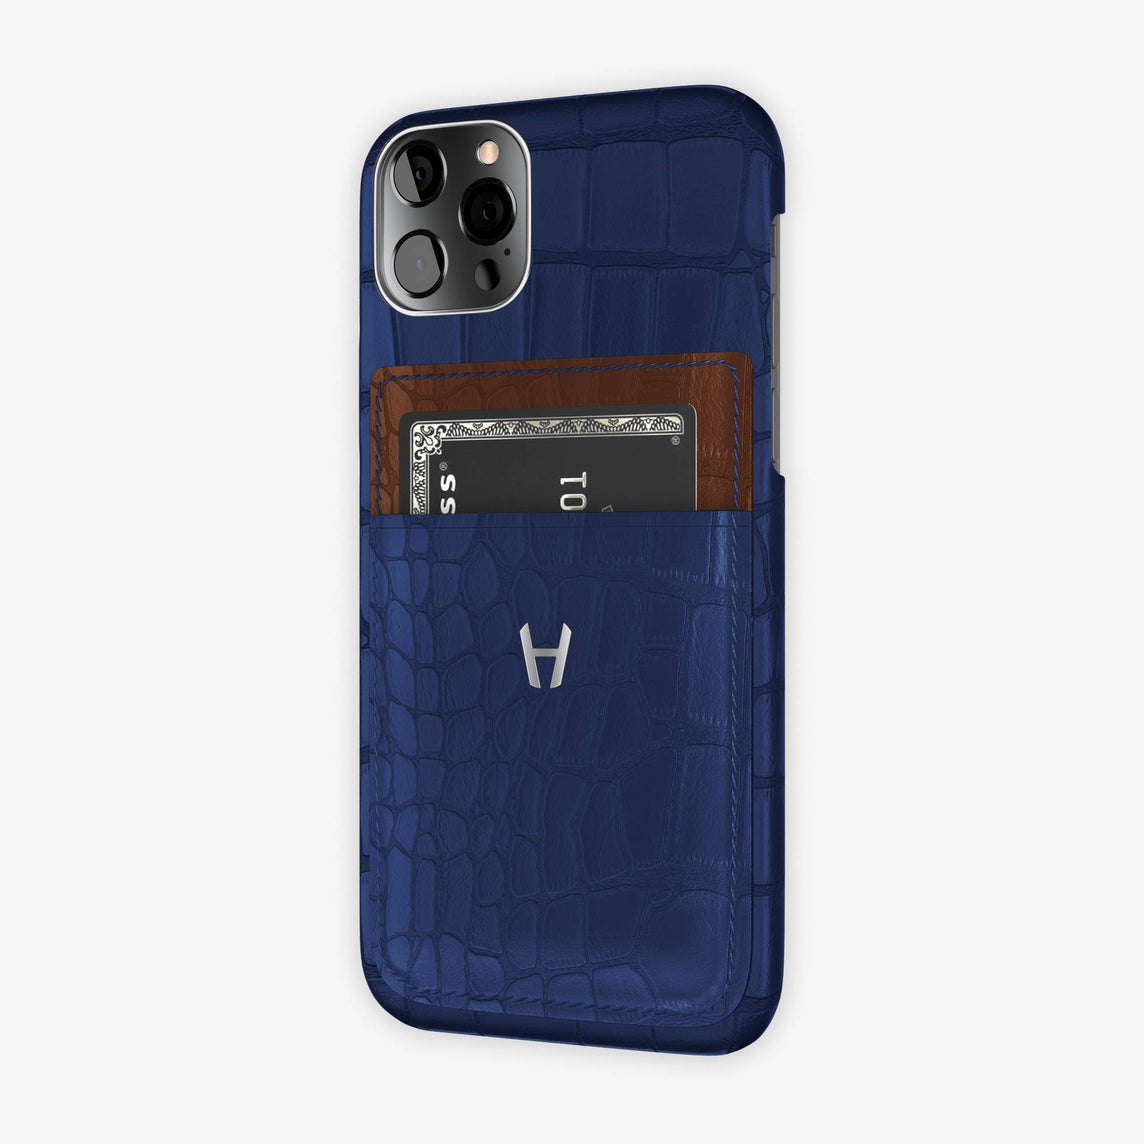 Alligator Pocket Case iPhone 12 & 12 Pro  | Navy Blue/Brown - Stainless Steel